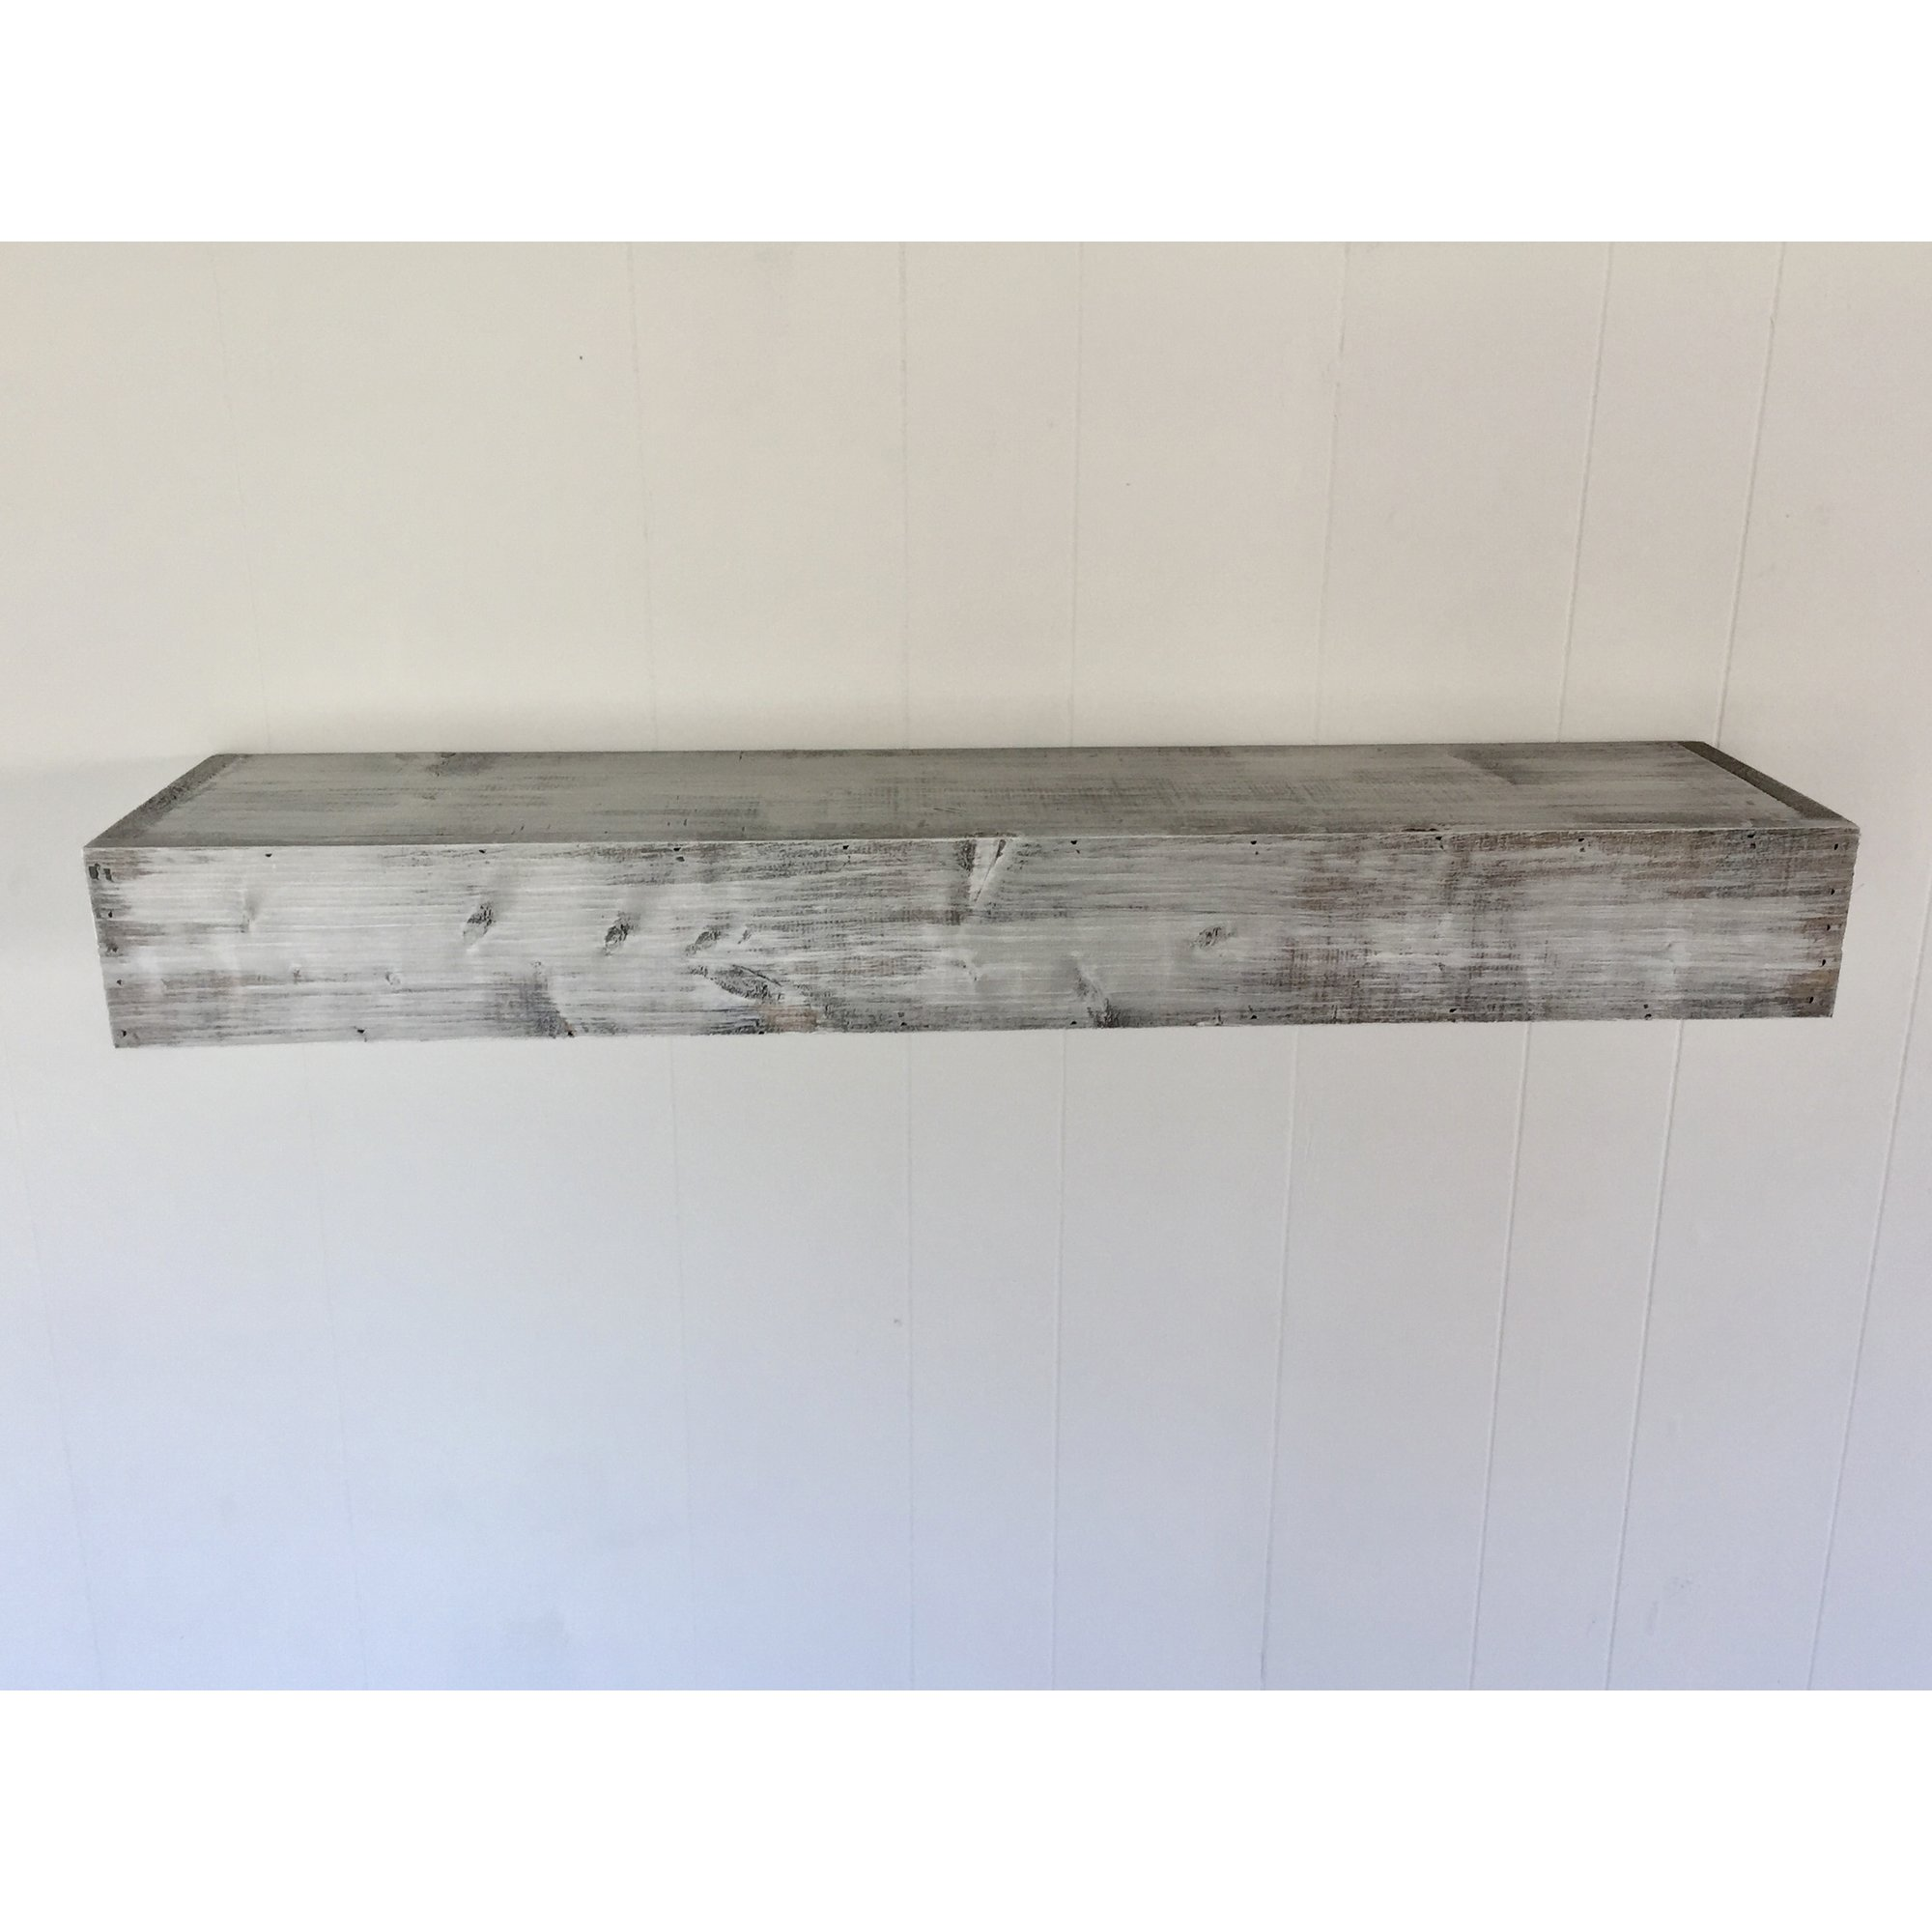 wall shelves with hooks you love floating shelf shabby white solid wood handmade rustic style gray quick view canadian tire toronto vanity stools target diy hang ture without